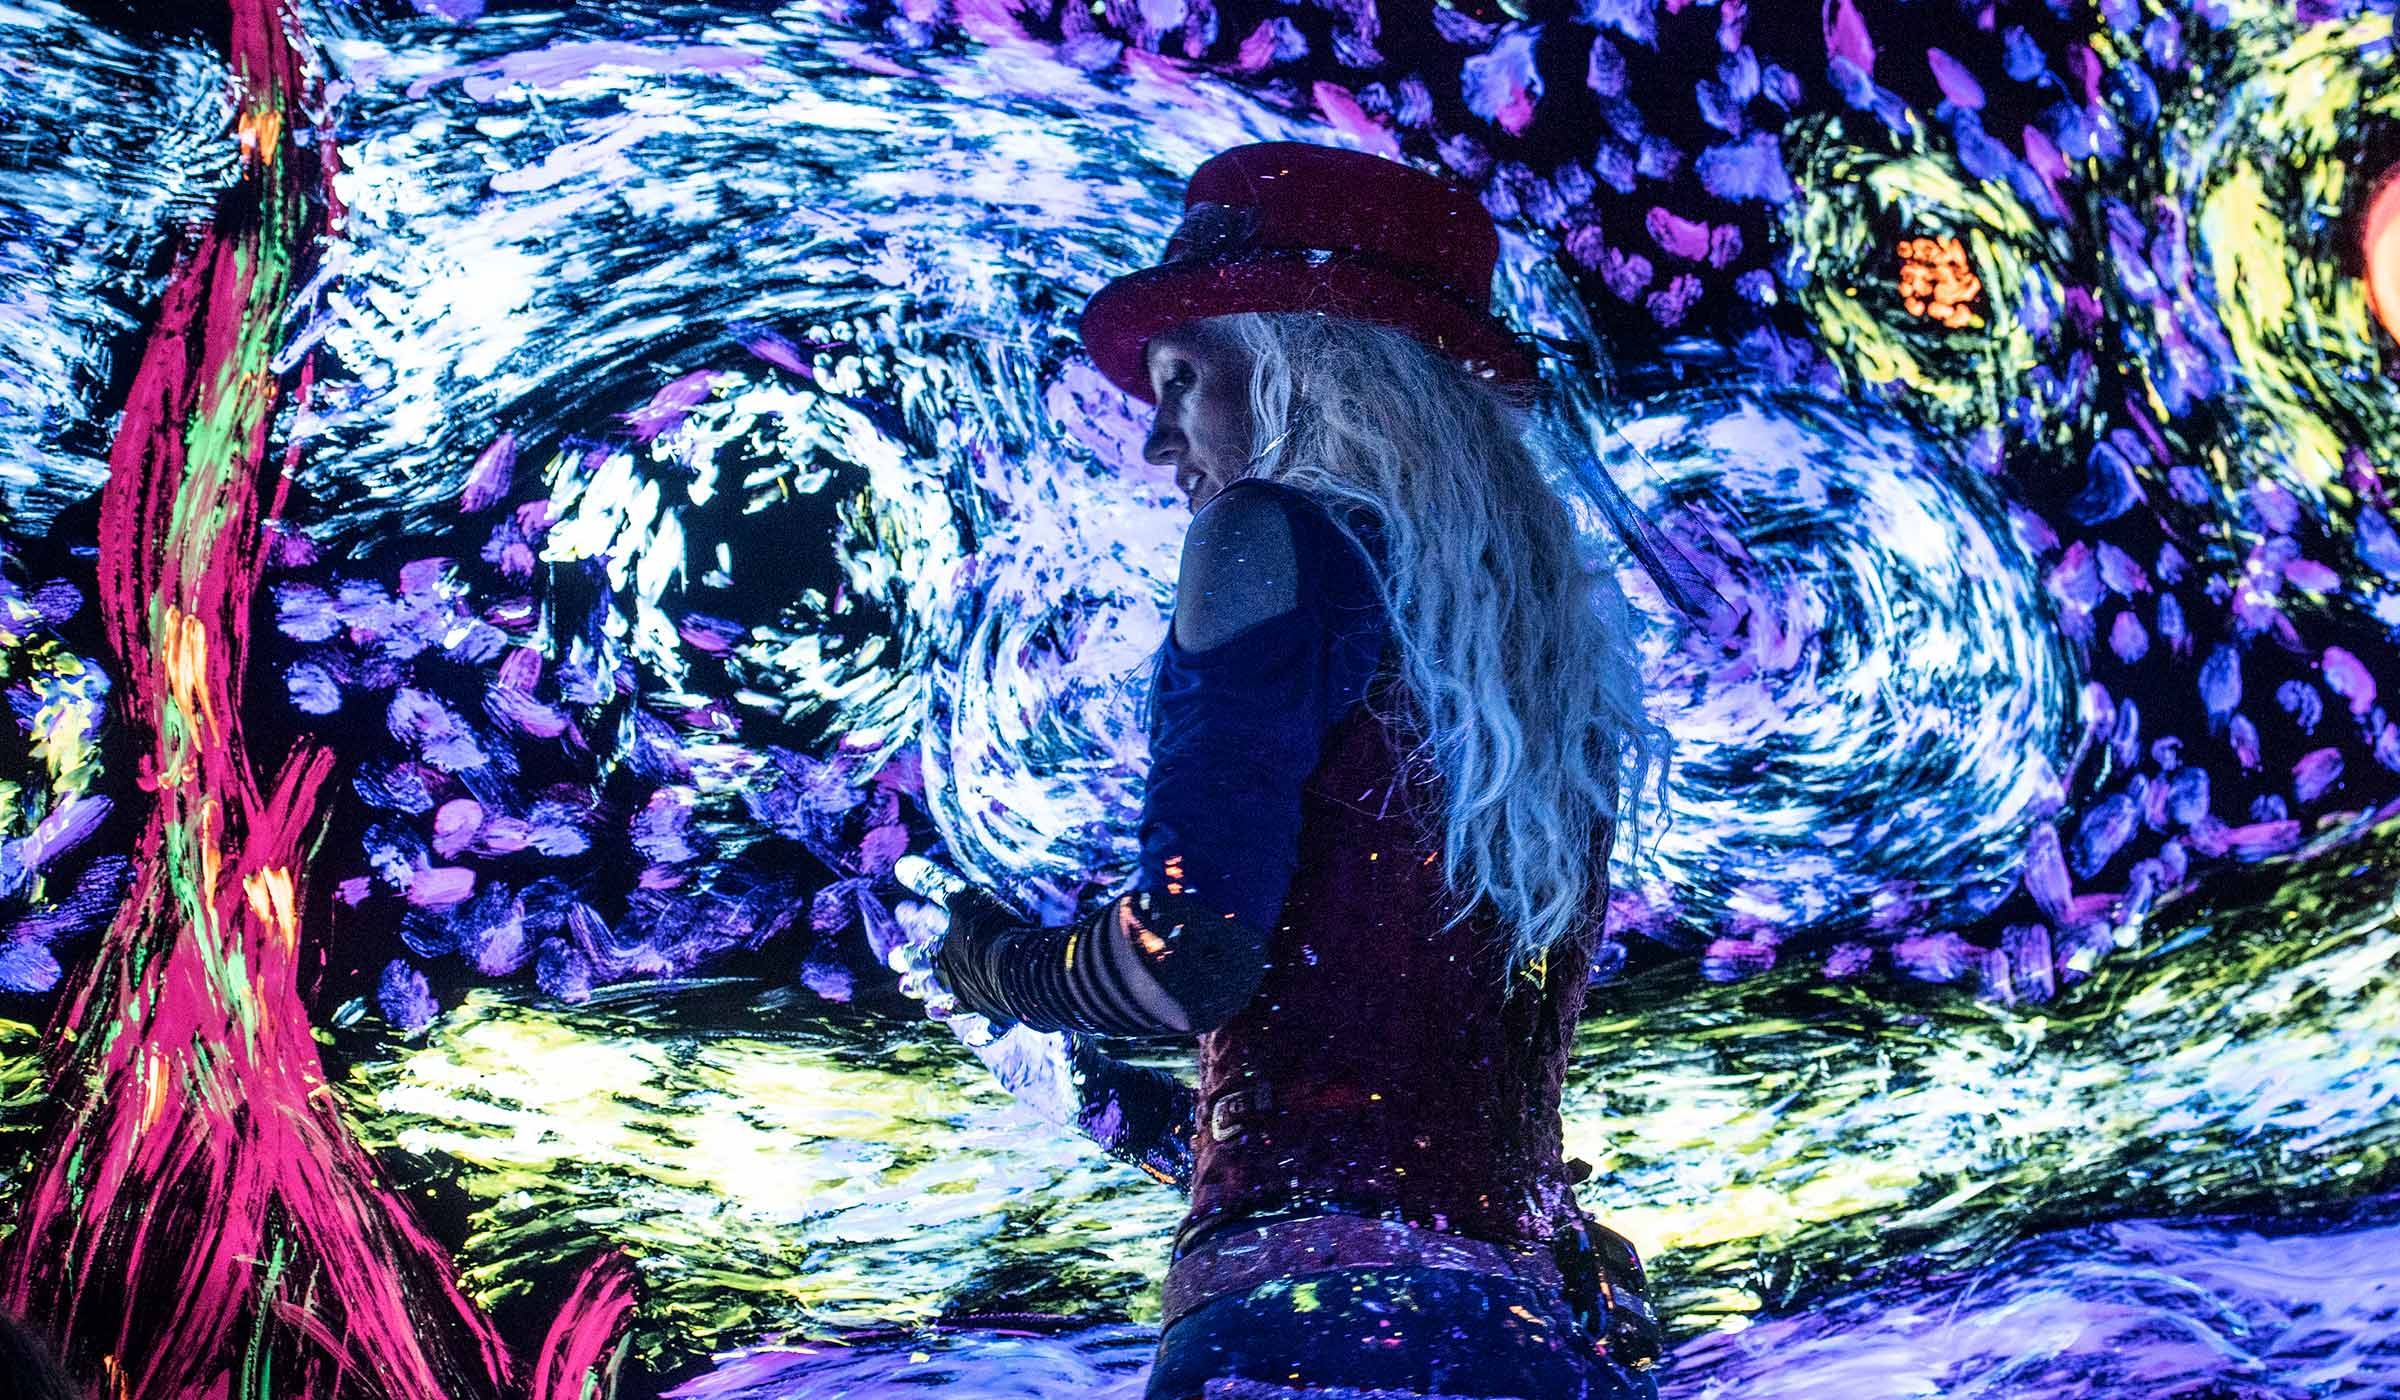 Lit by glowing blaclights, the female Artrageous lead performer uses her hands to add glowing paint to a canvas covered with a a swirly sky painting.